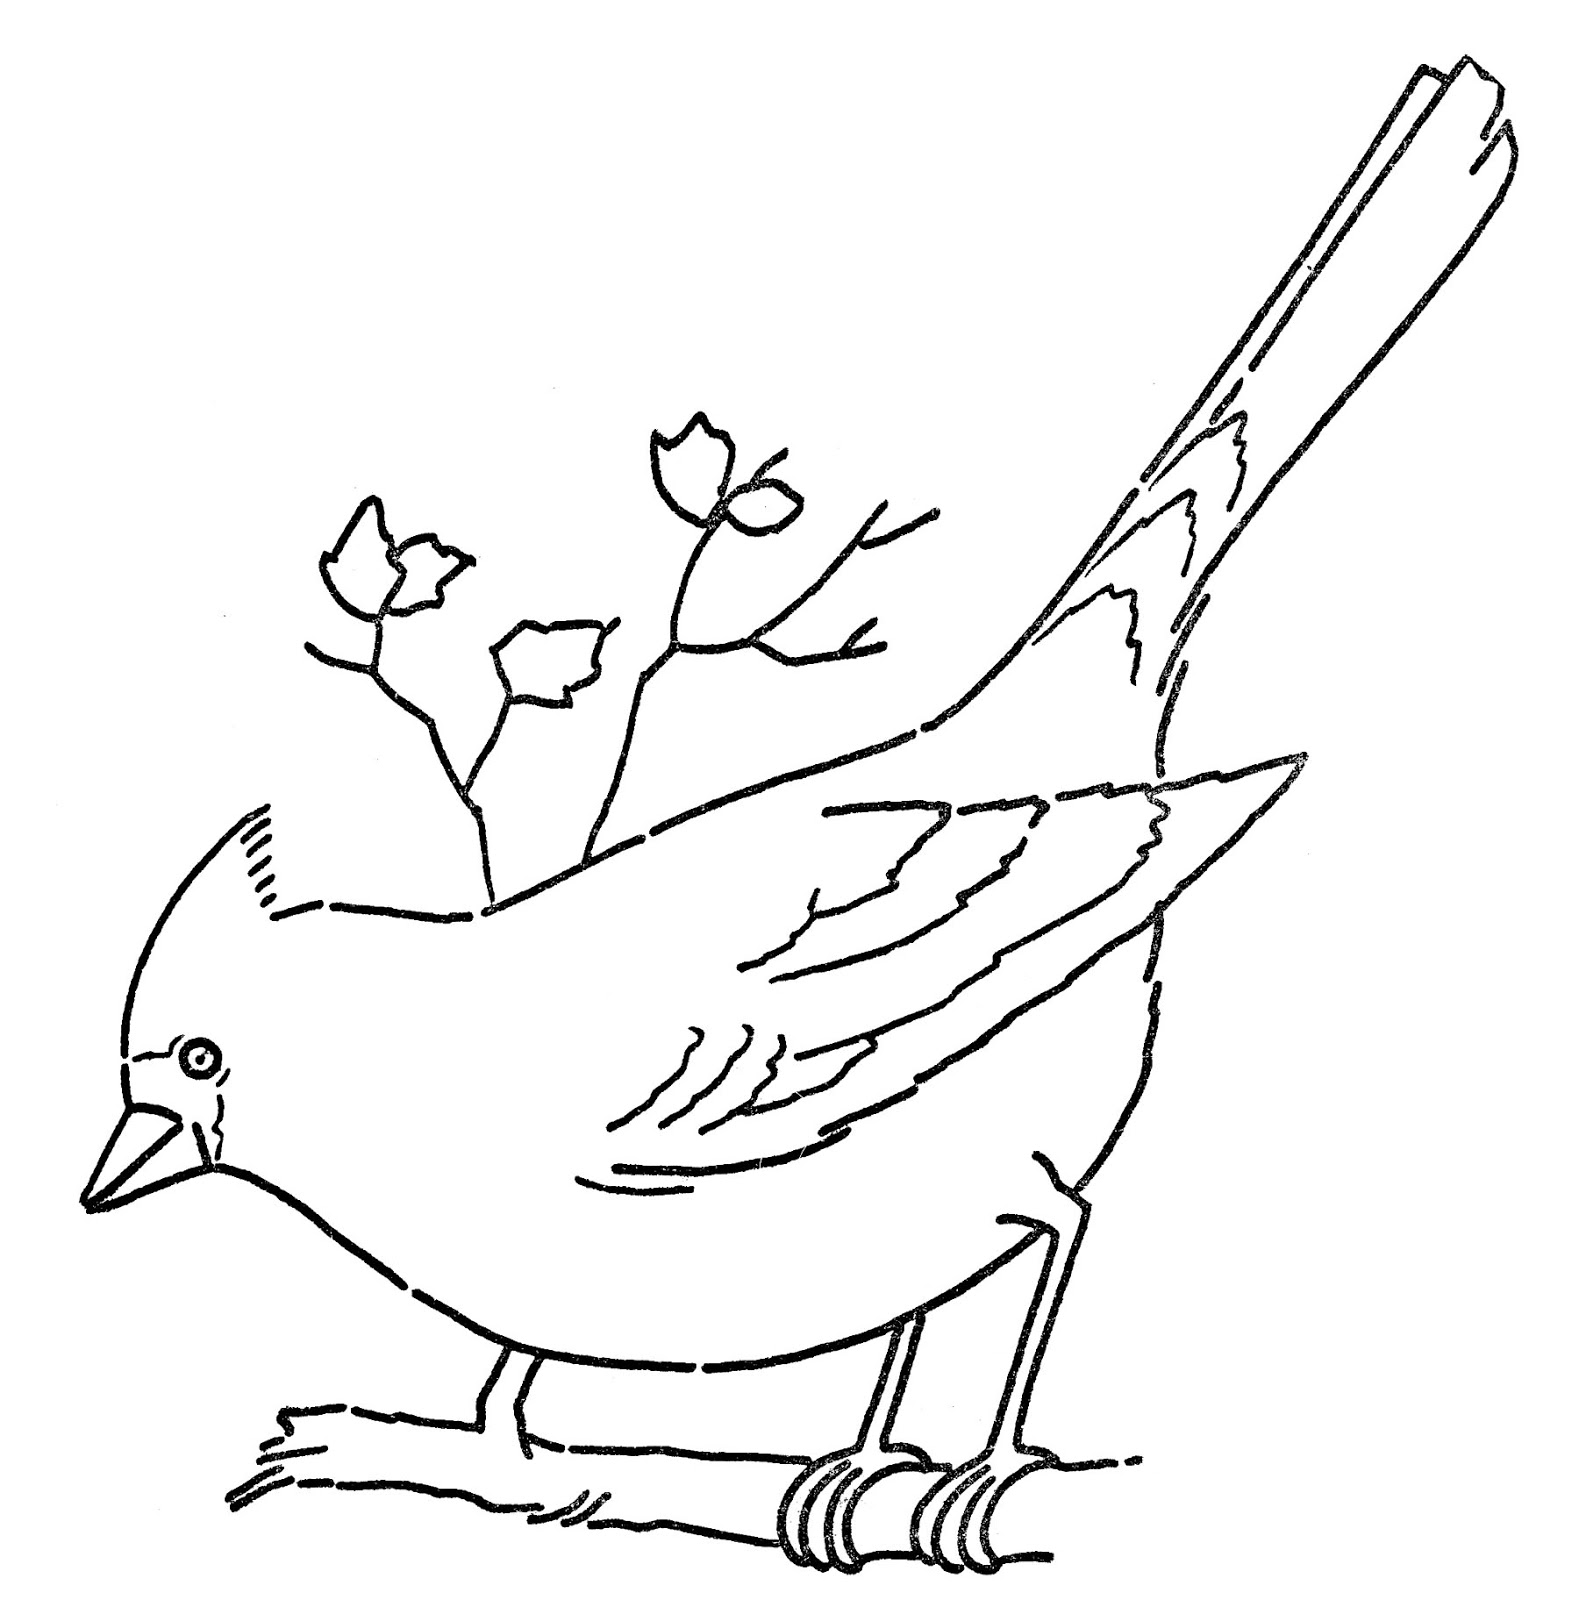 Printable Line Drawings Of Animals : Line art coloring page cardinal on branch the